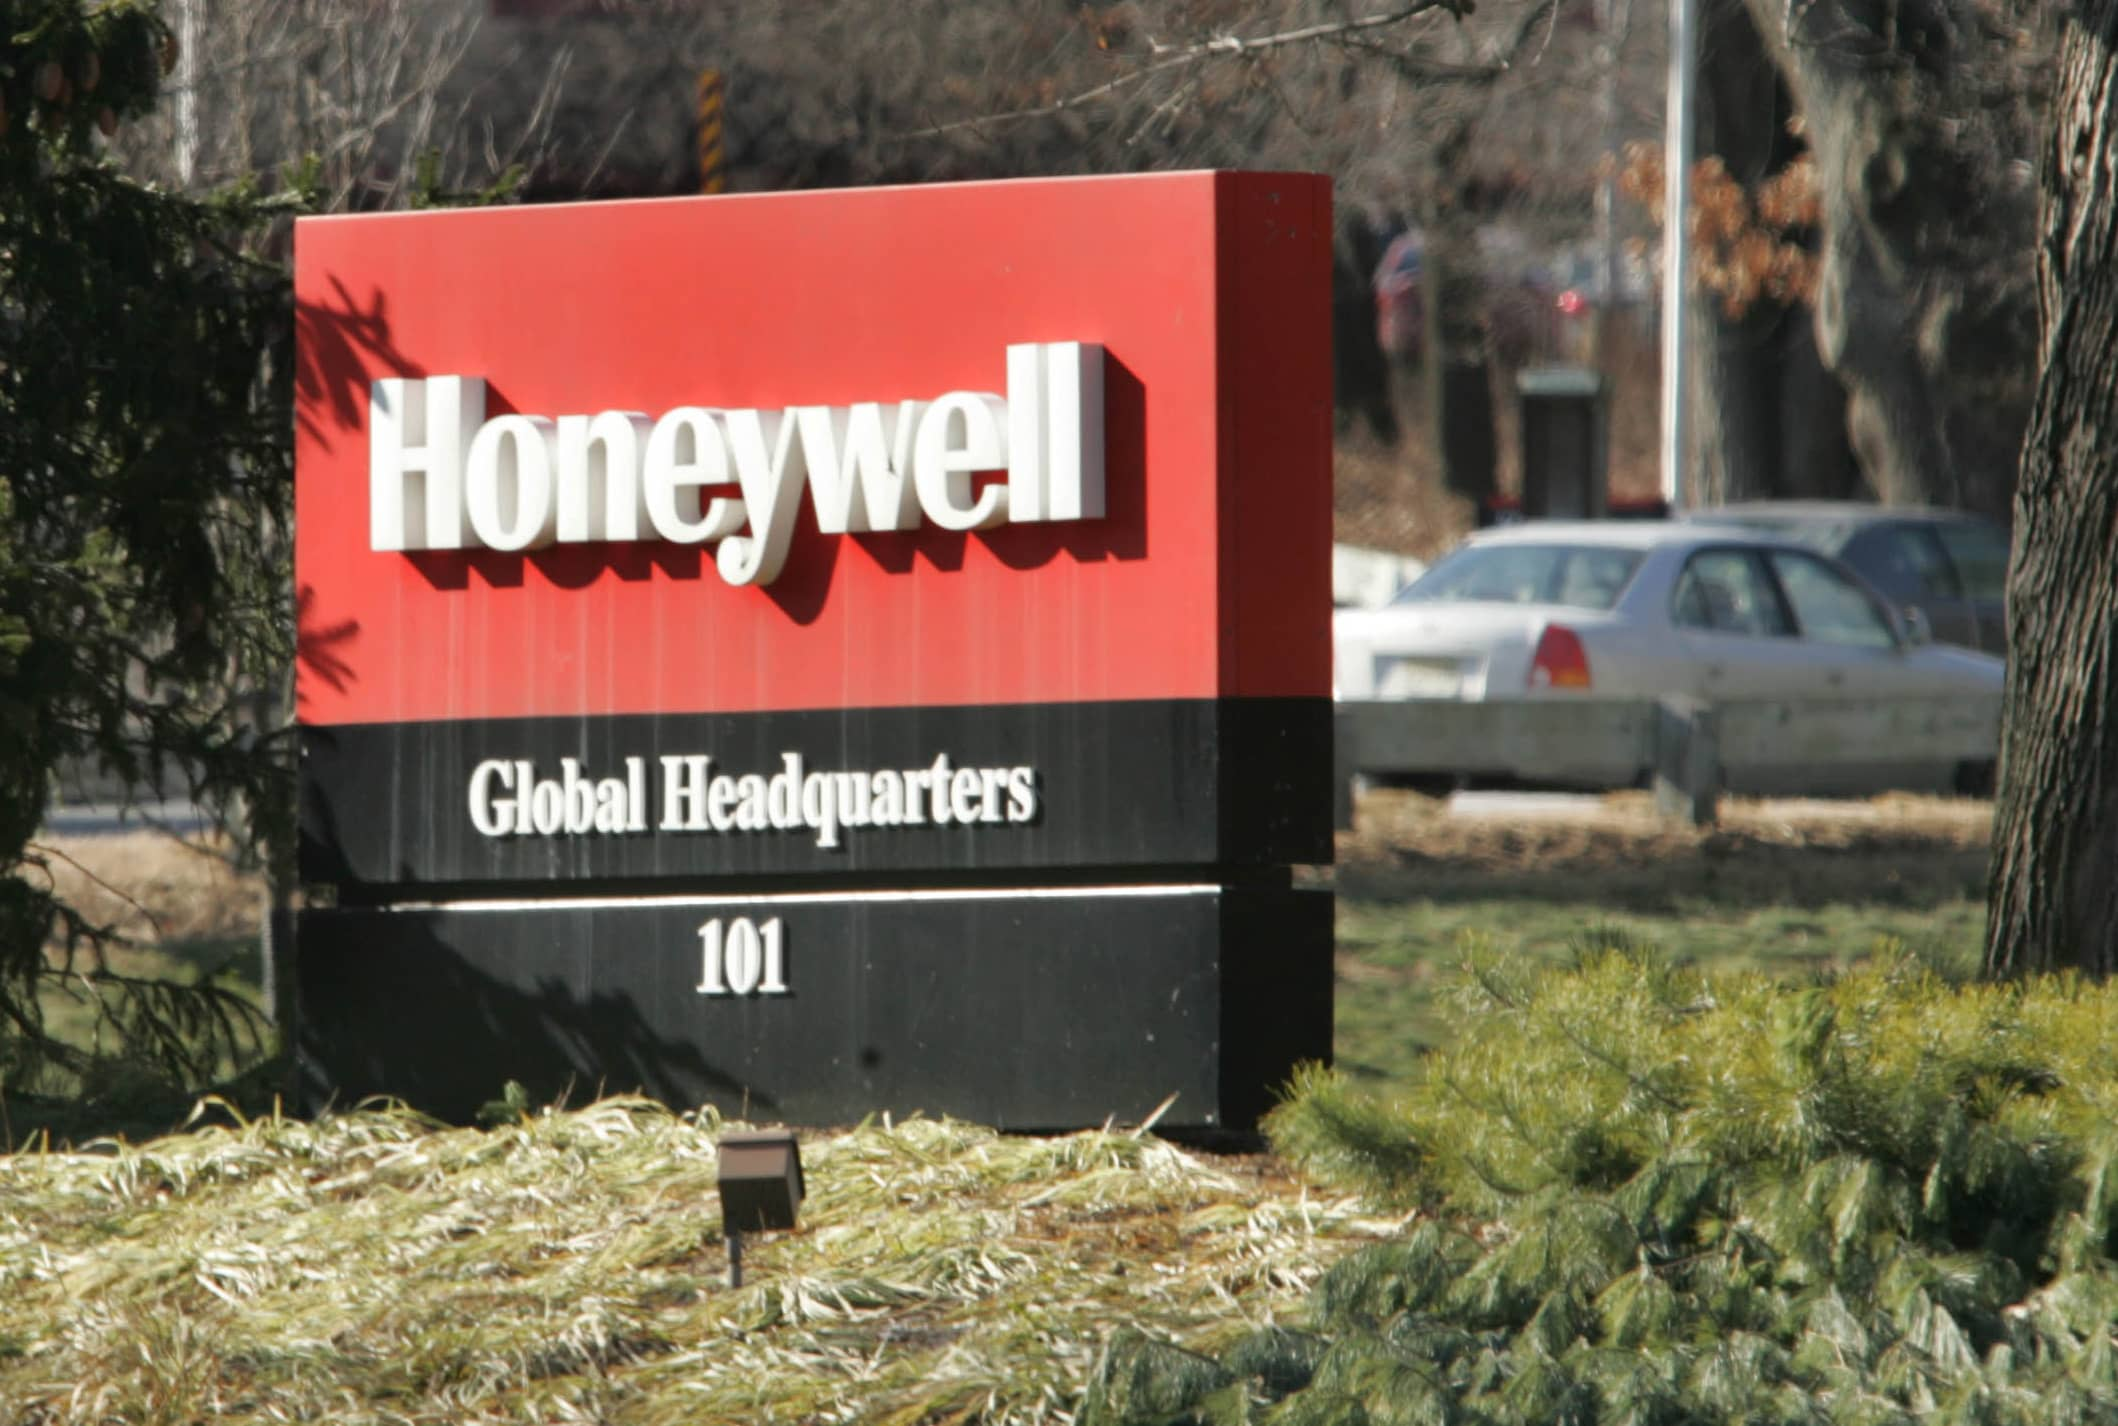 Honeywell to move its HQ to Charlotte, North Carolina from New Jersey